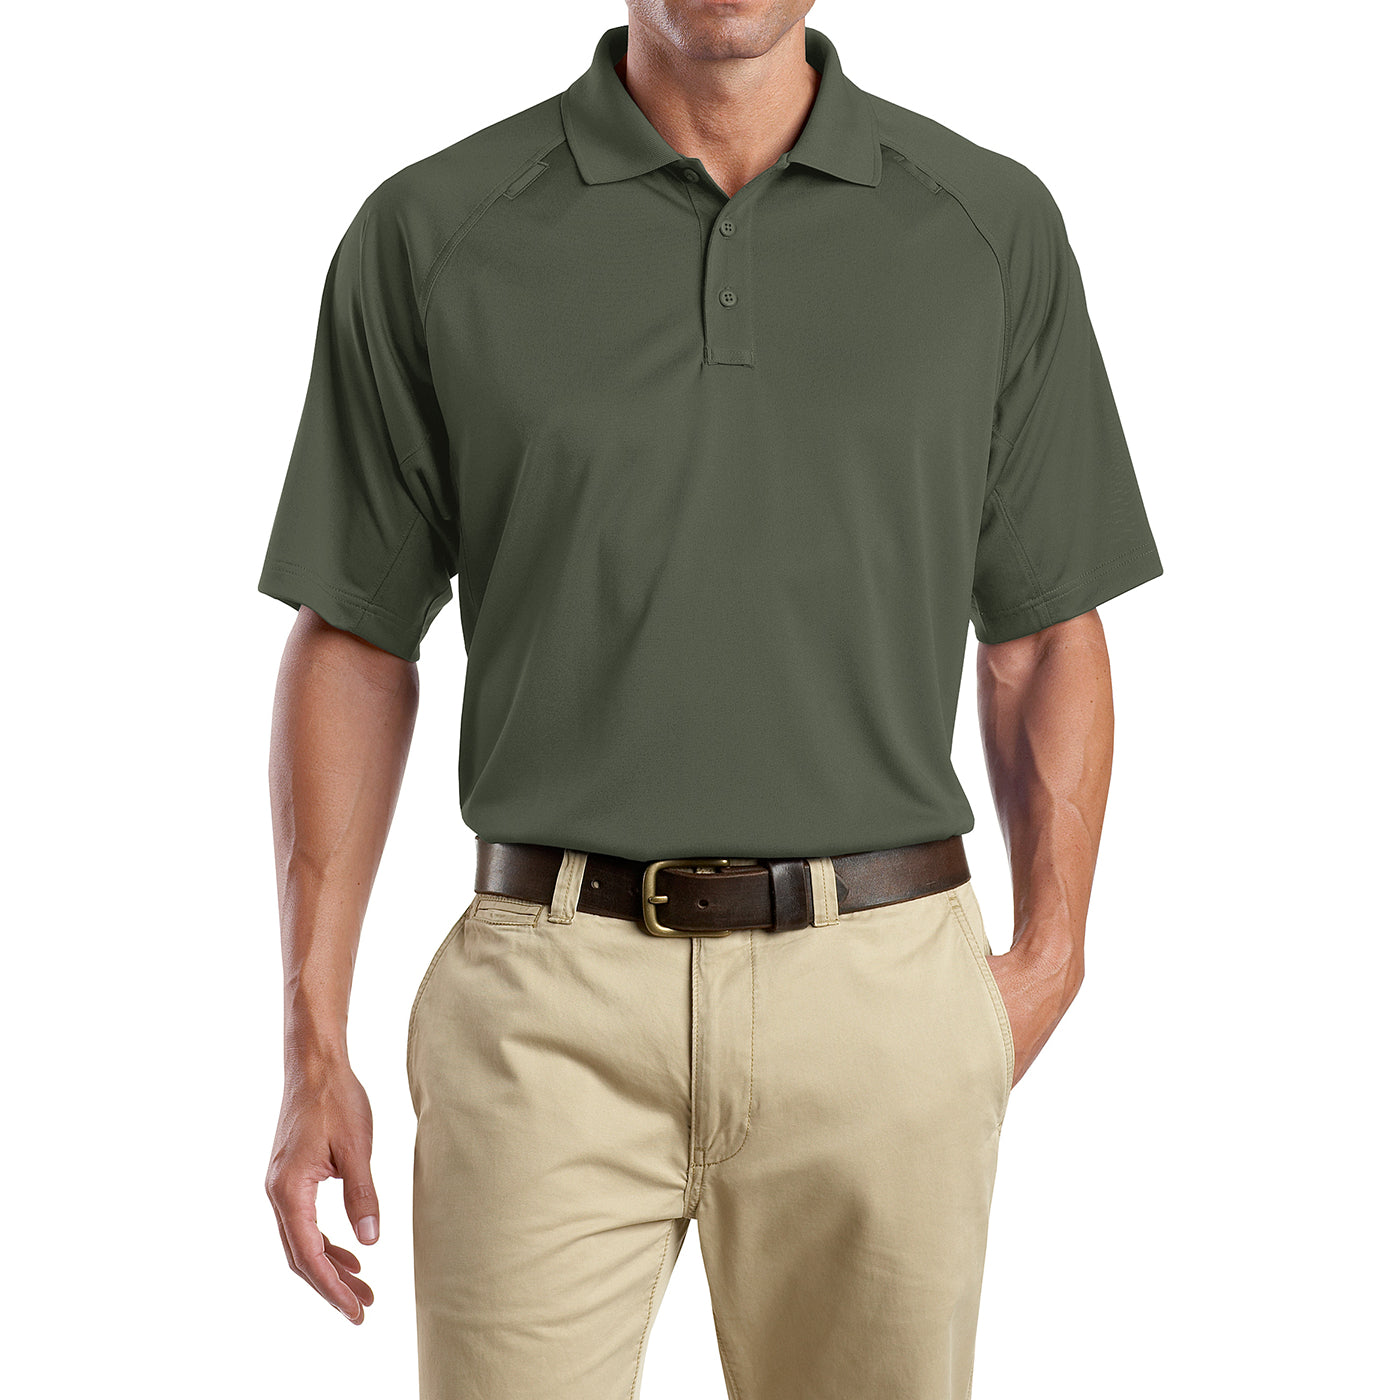 Men's Snag-Proof Tactical Polo Shirt - Tactical Green - Front